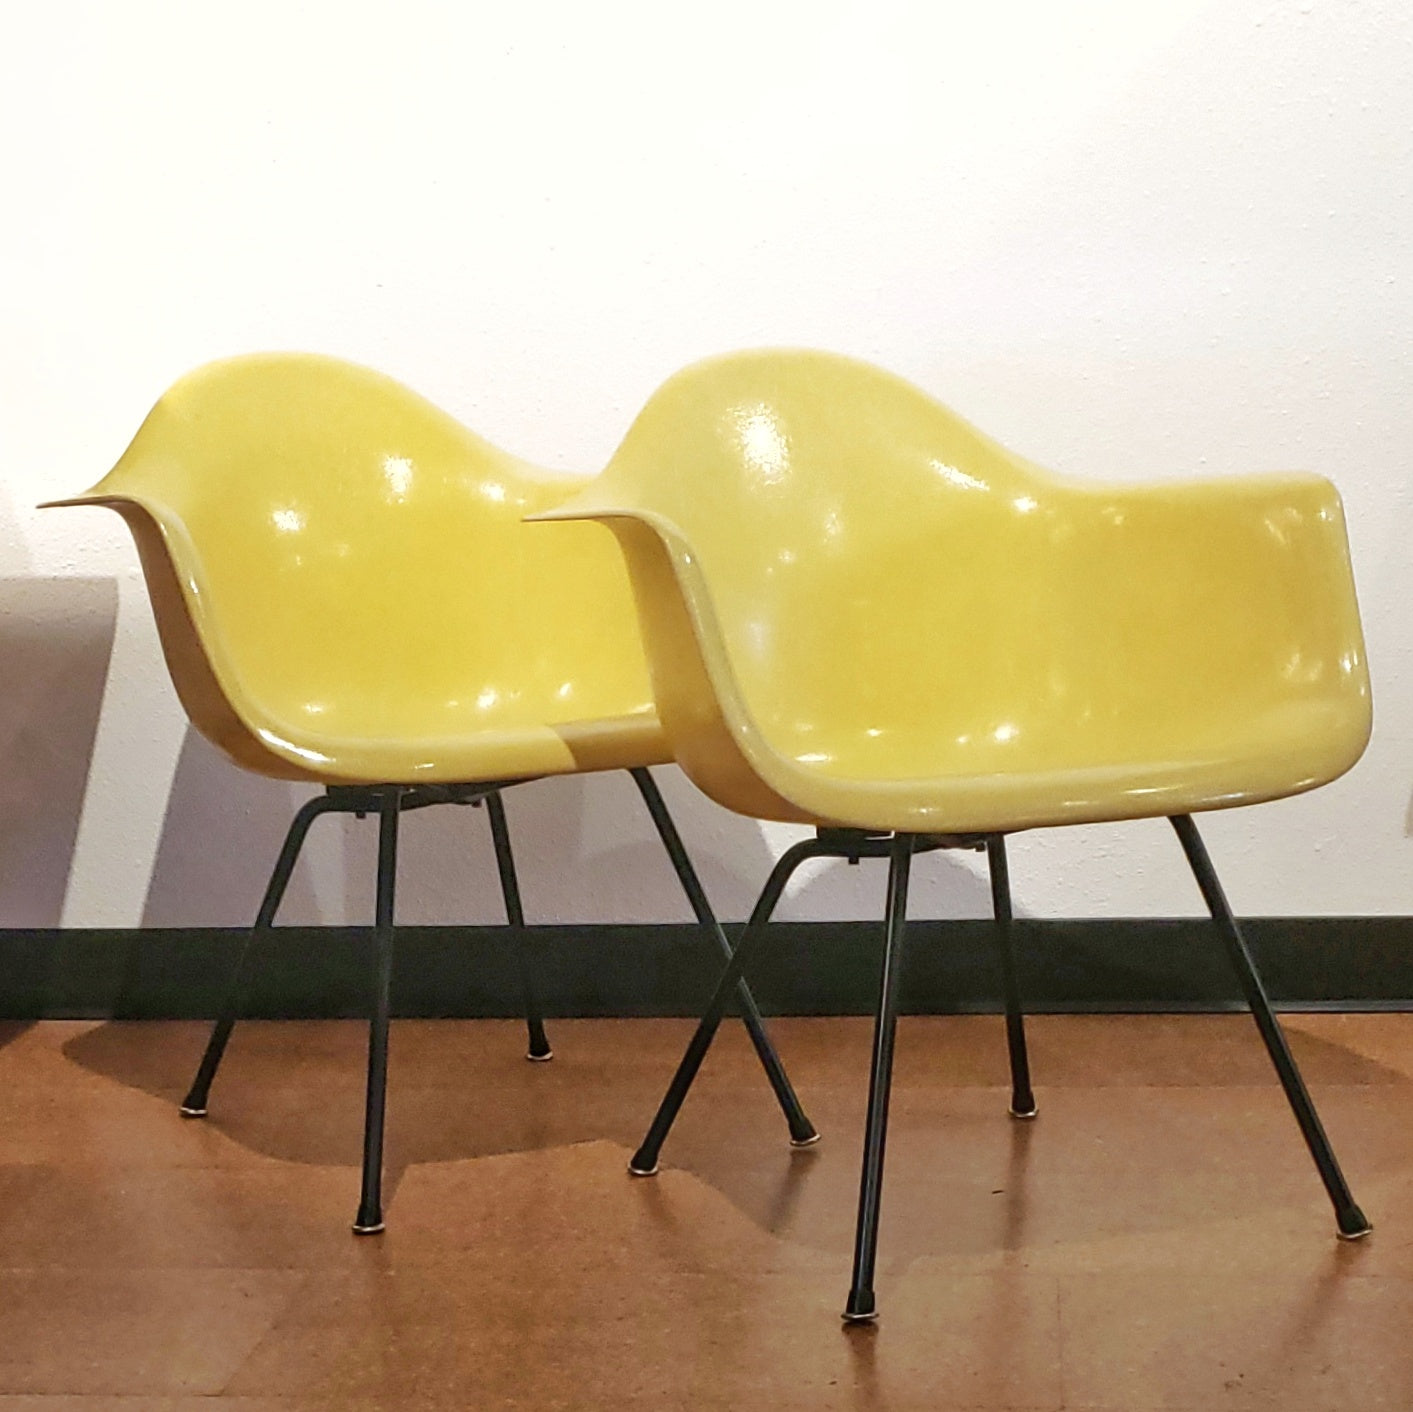 CHARLES & RAY EAMES 'LAX' ARMCHAIRS FOR HERMAN MILLER